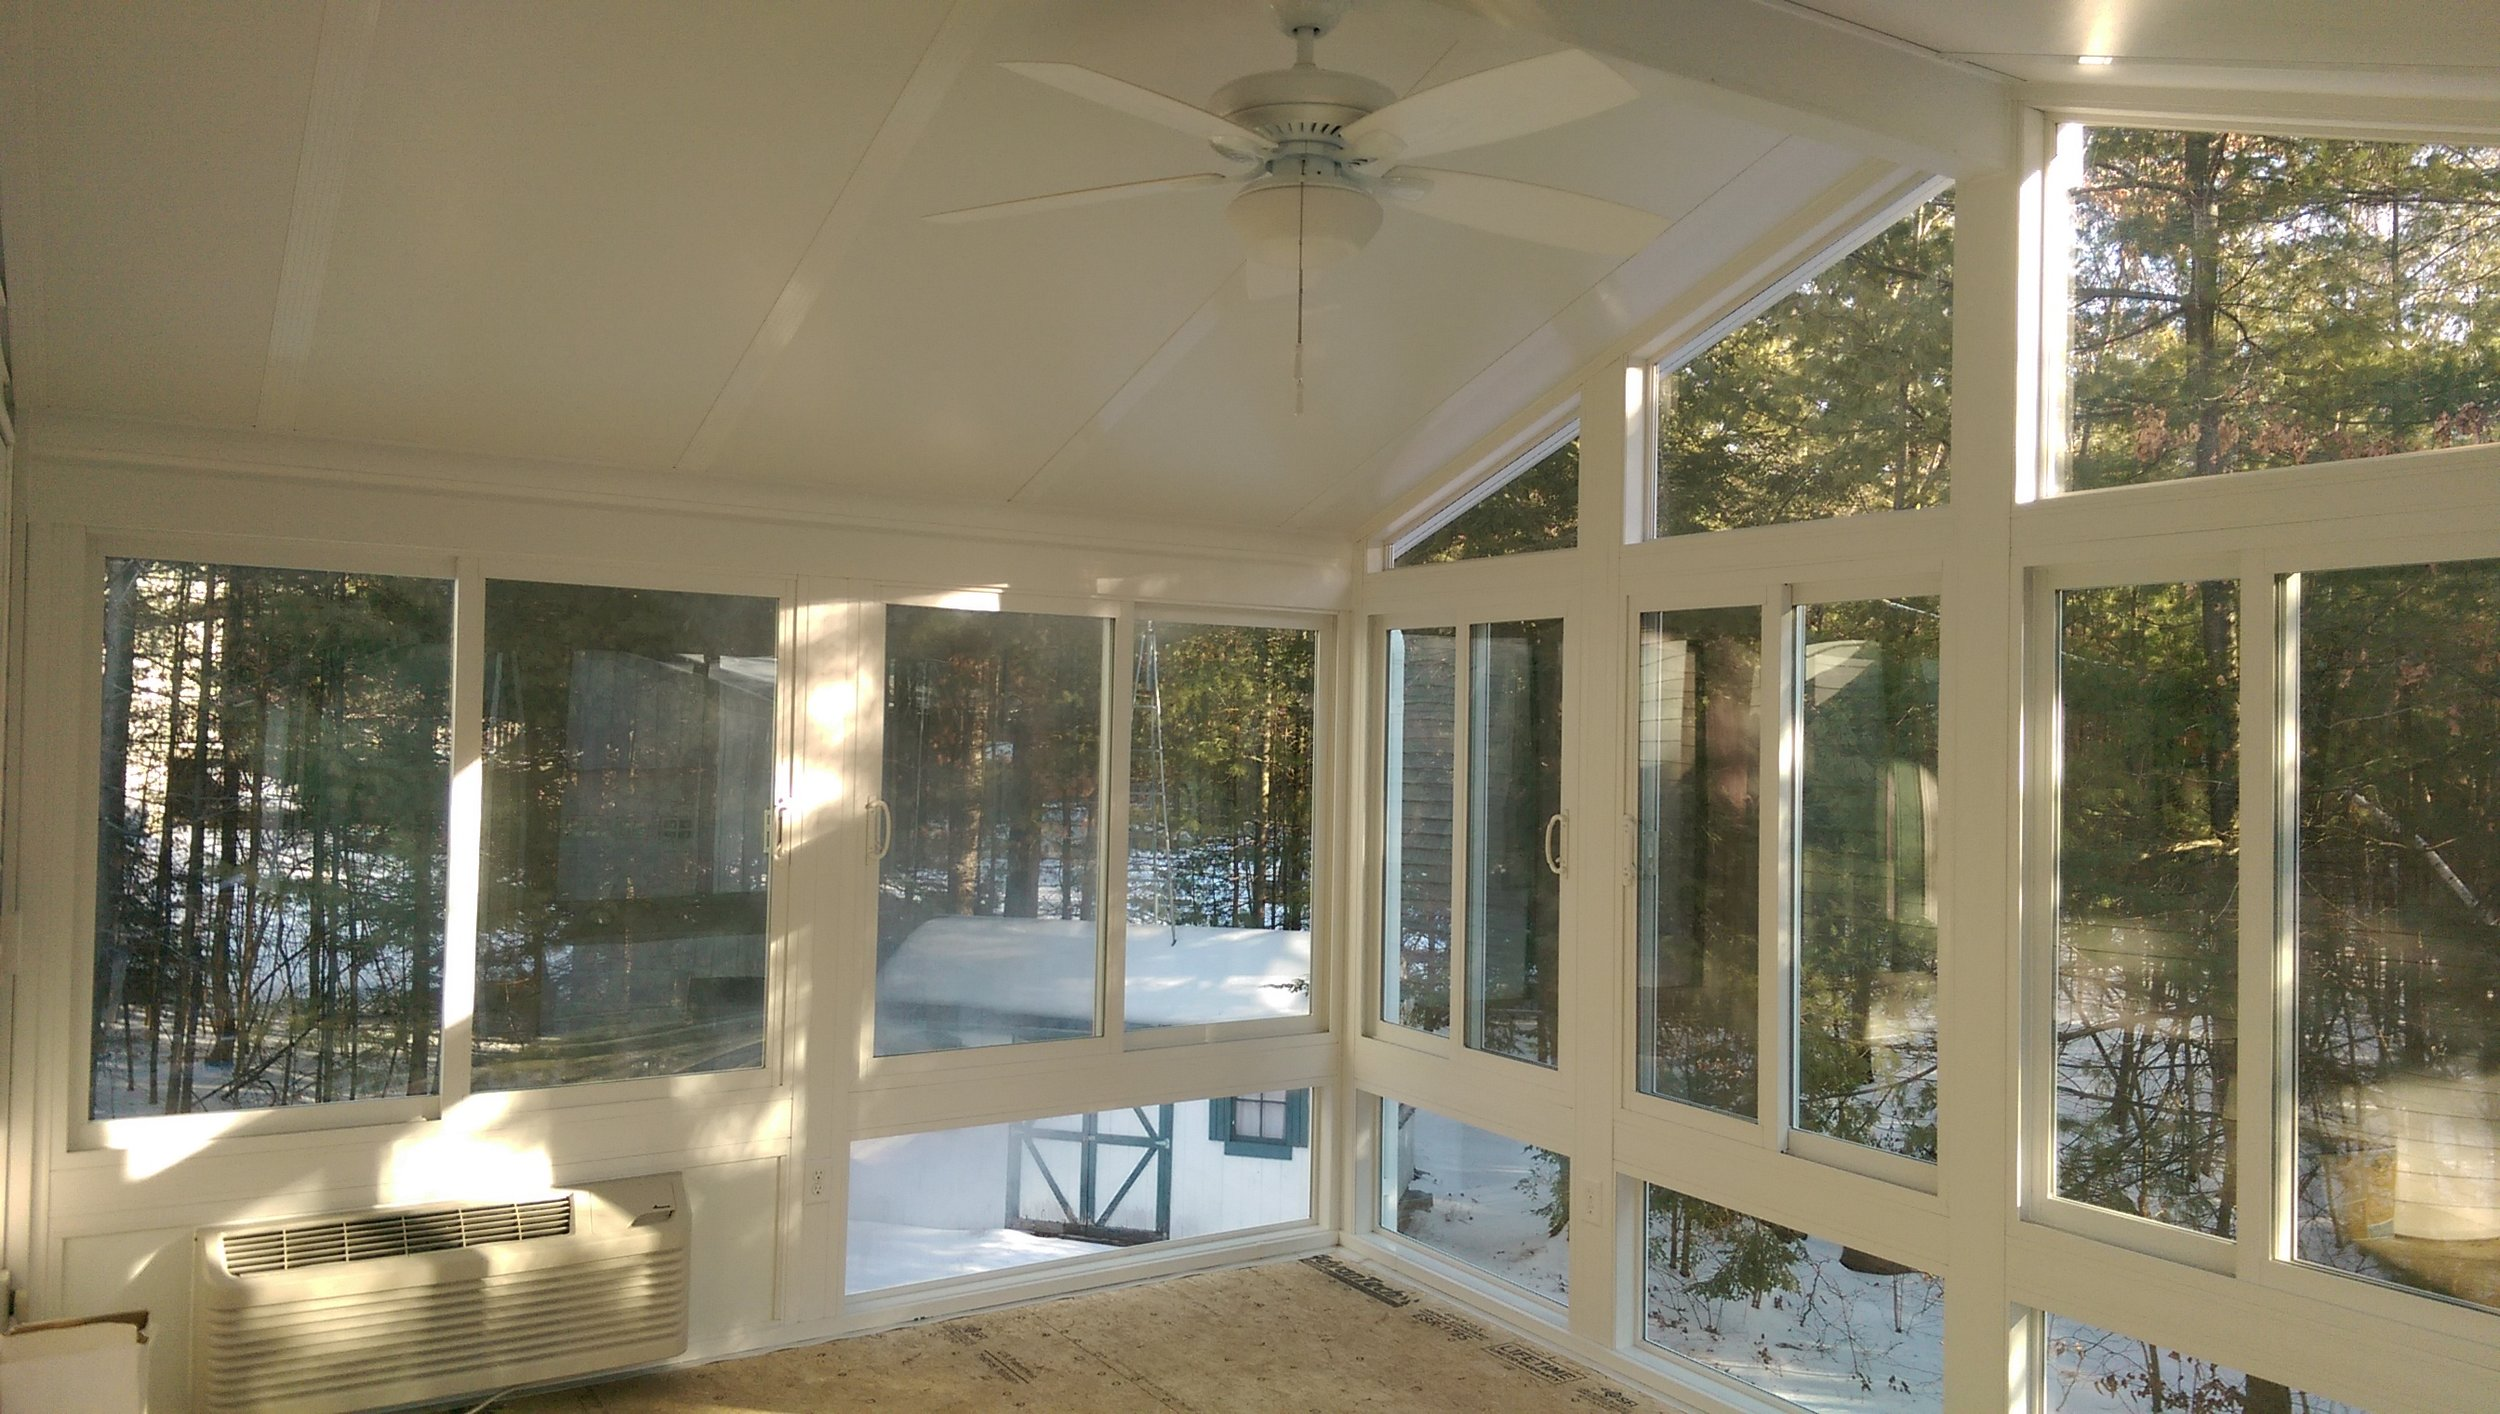 4-season sunroom interior.jpg